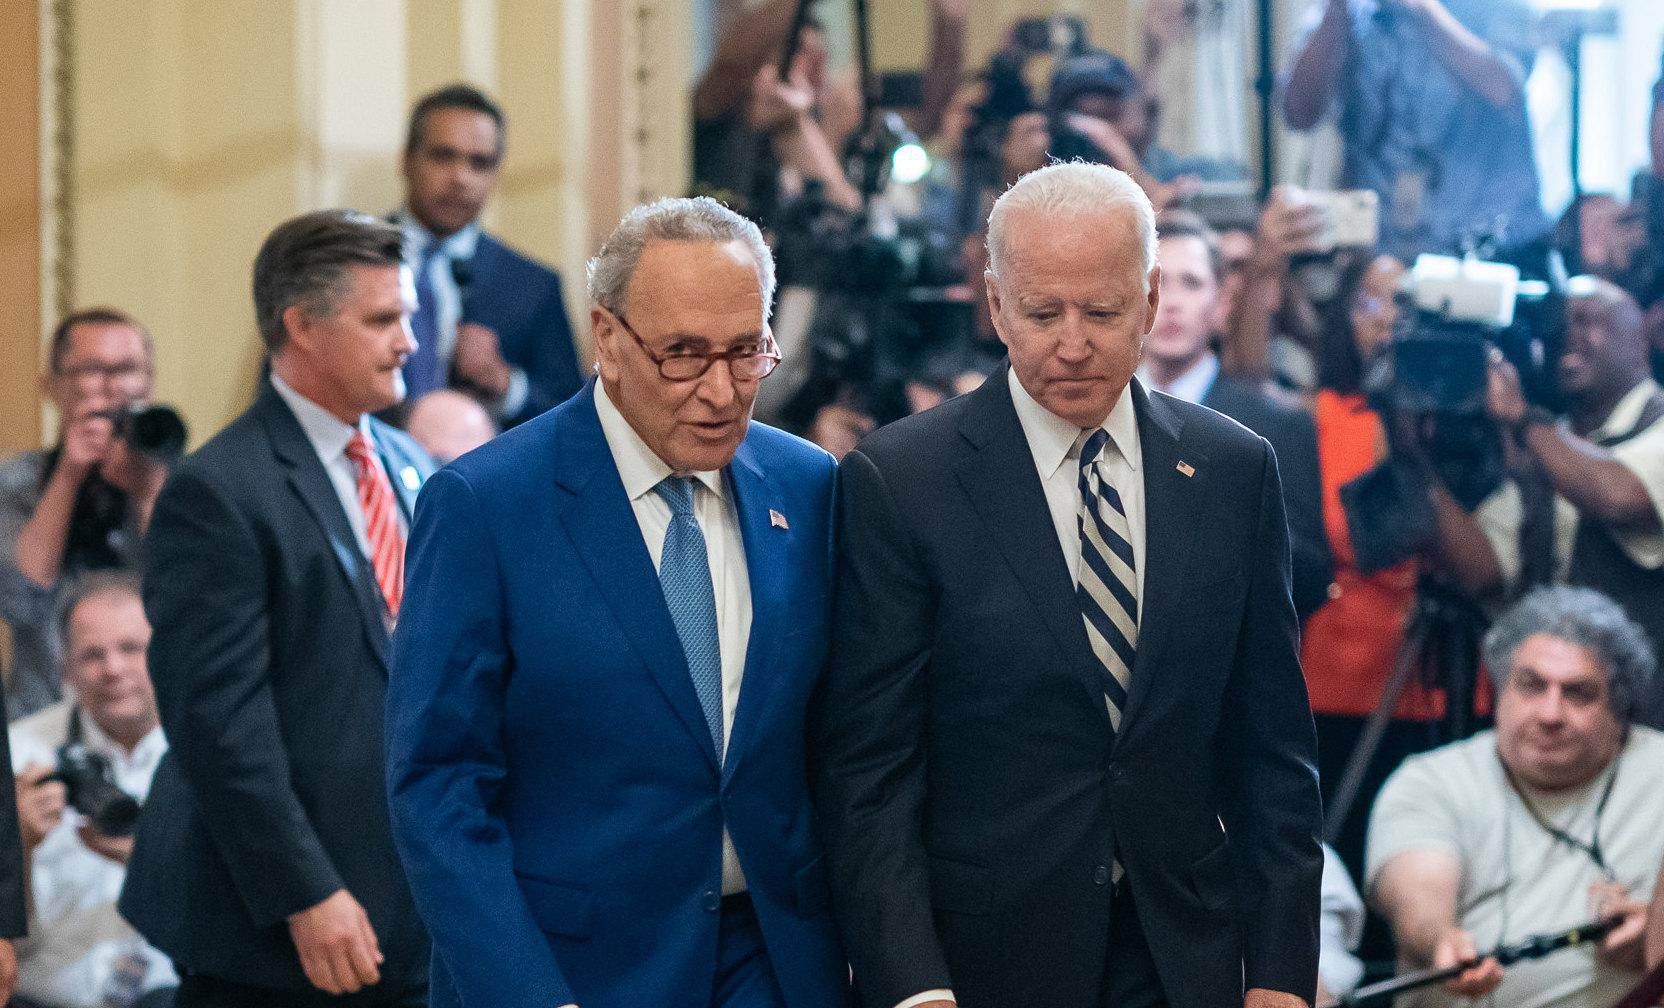 Let's face it: Mitch McConnell has the Democrats trapped